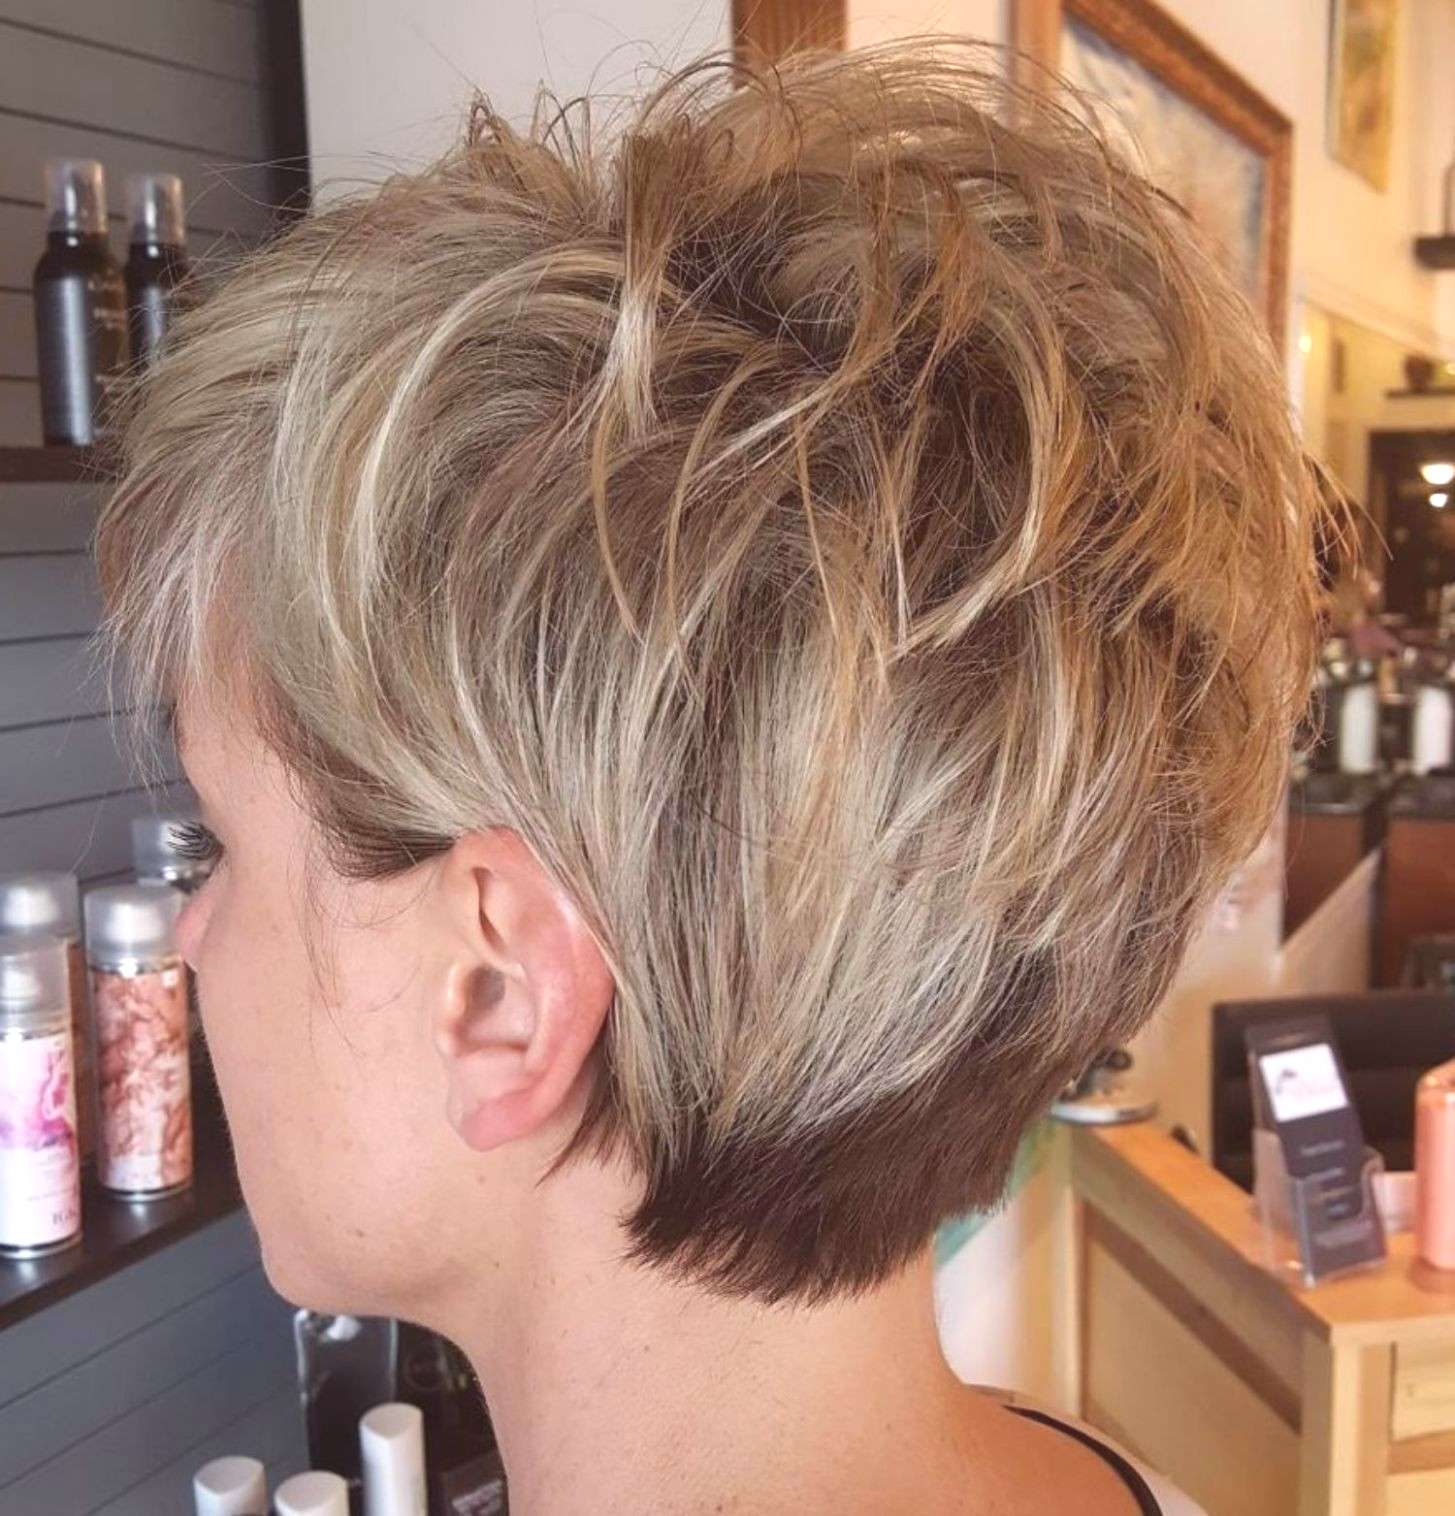 Pixie Shag With Spiky Top